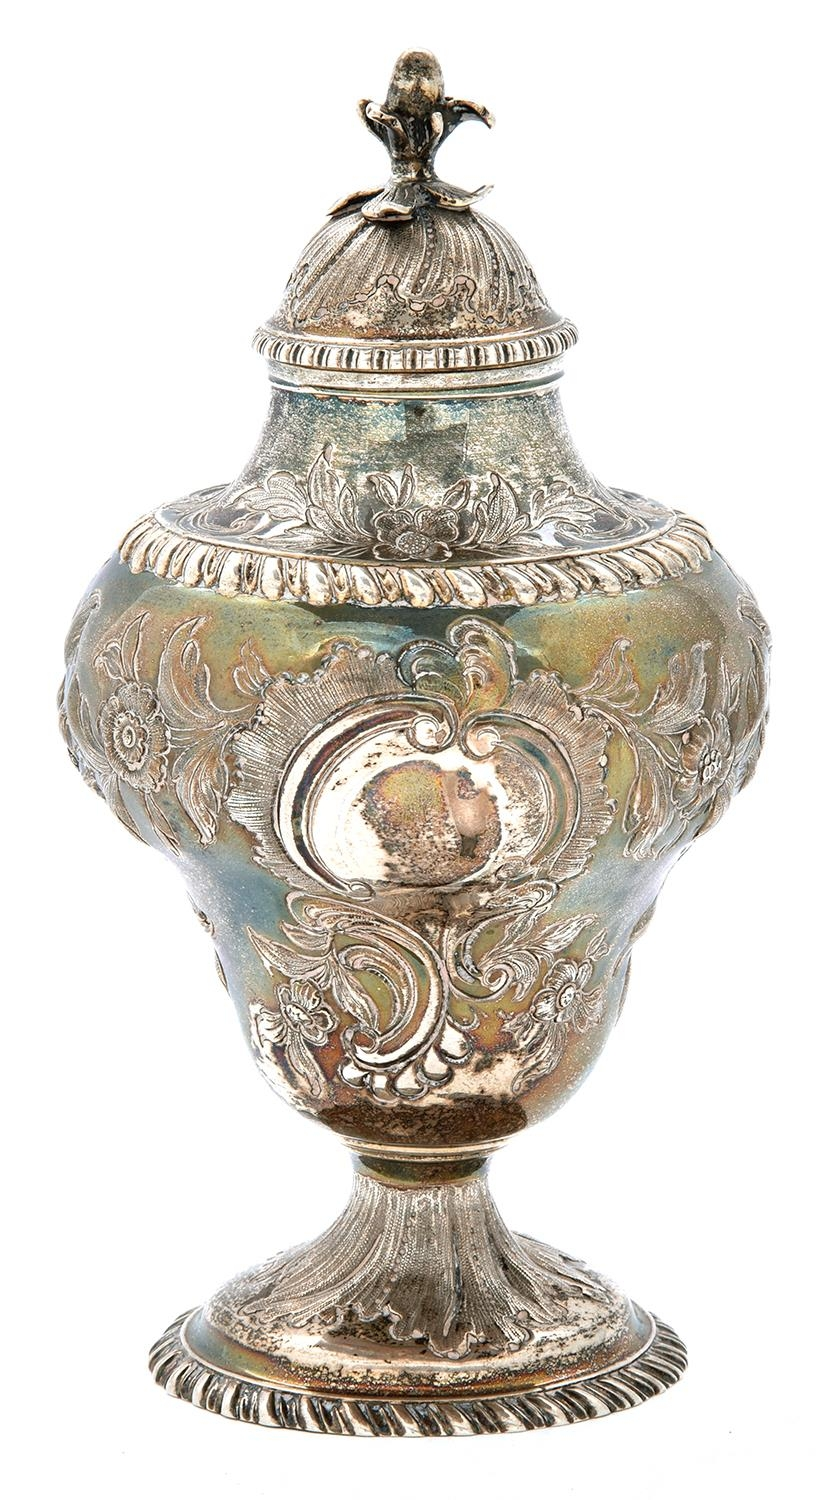 A George III silver tea caddy and cover, of pear shape, crisply chased with an eagle, flowers and